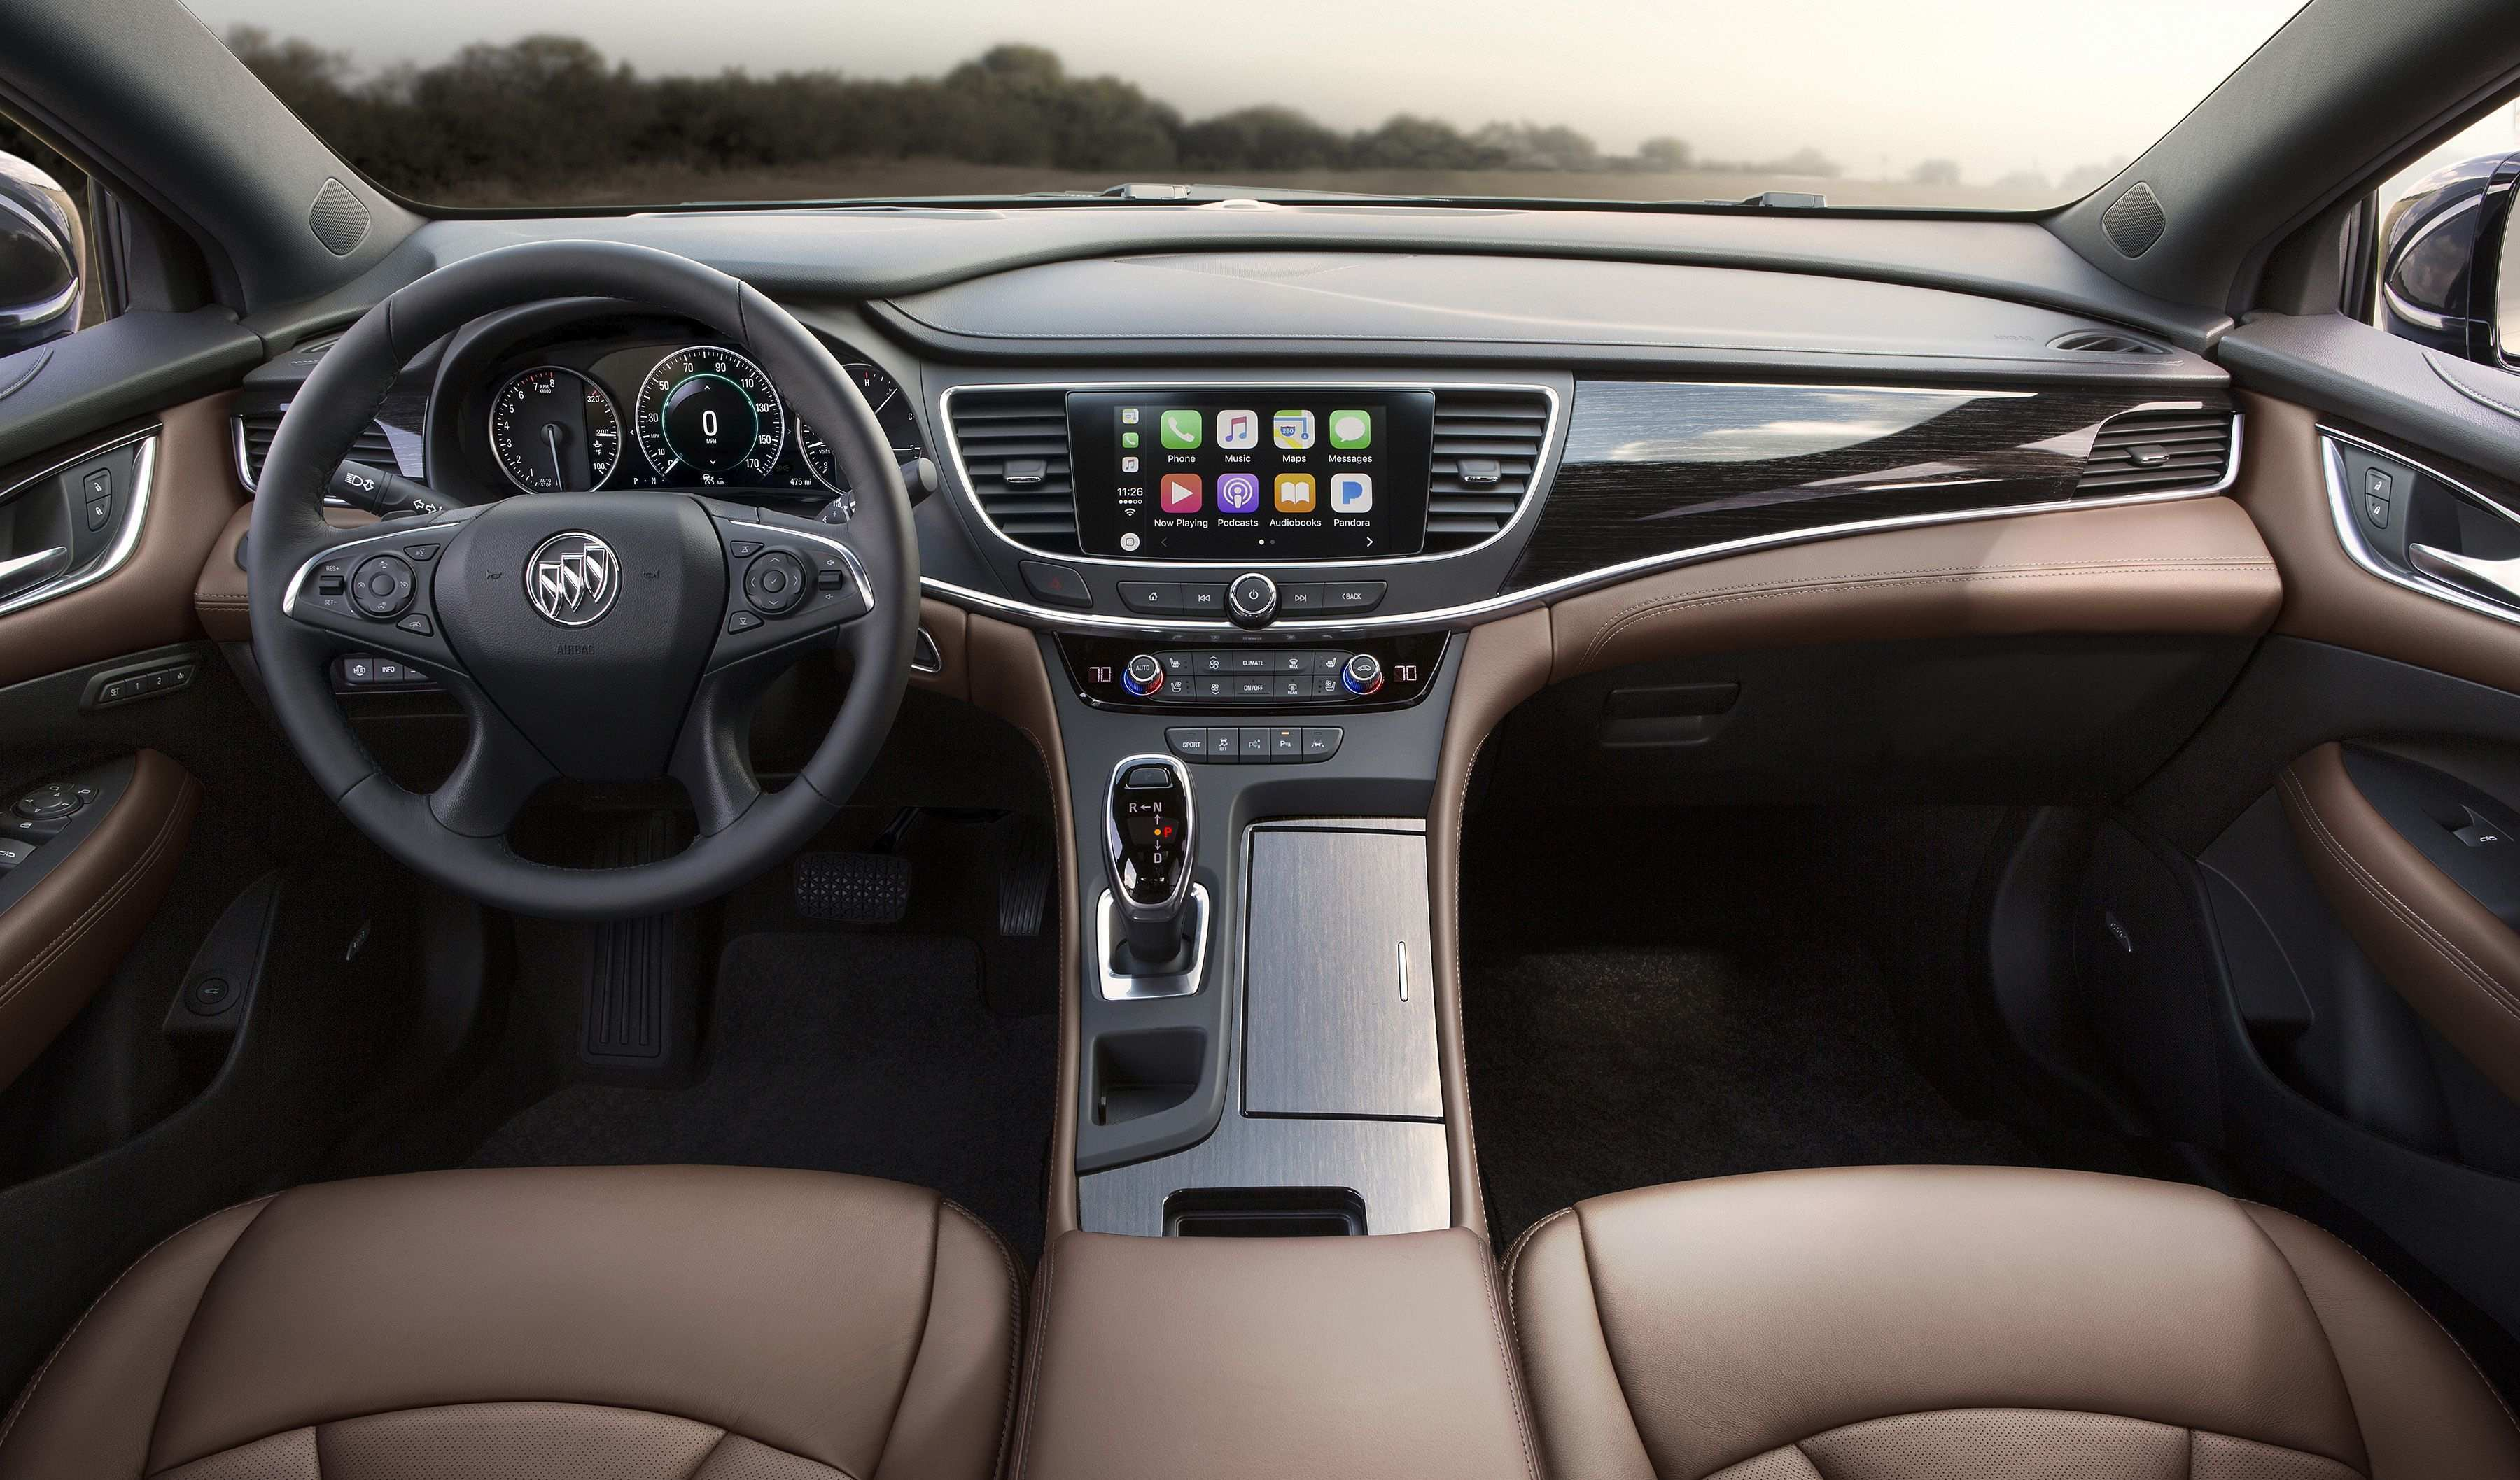 33 Best Review The New Buick Cars 2019 New Interior Performance and New Engine for The New Buick Cars 2019 New Interior